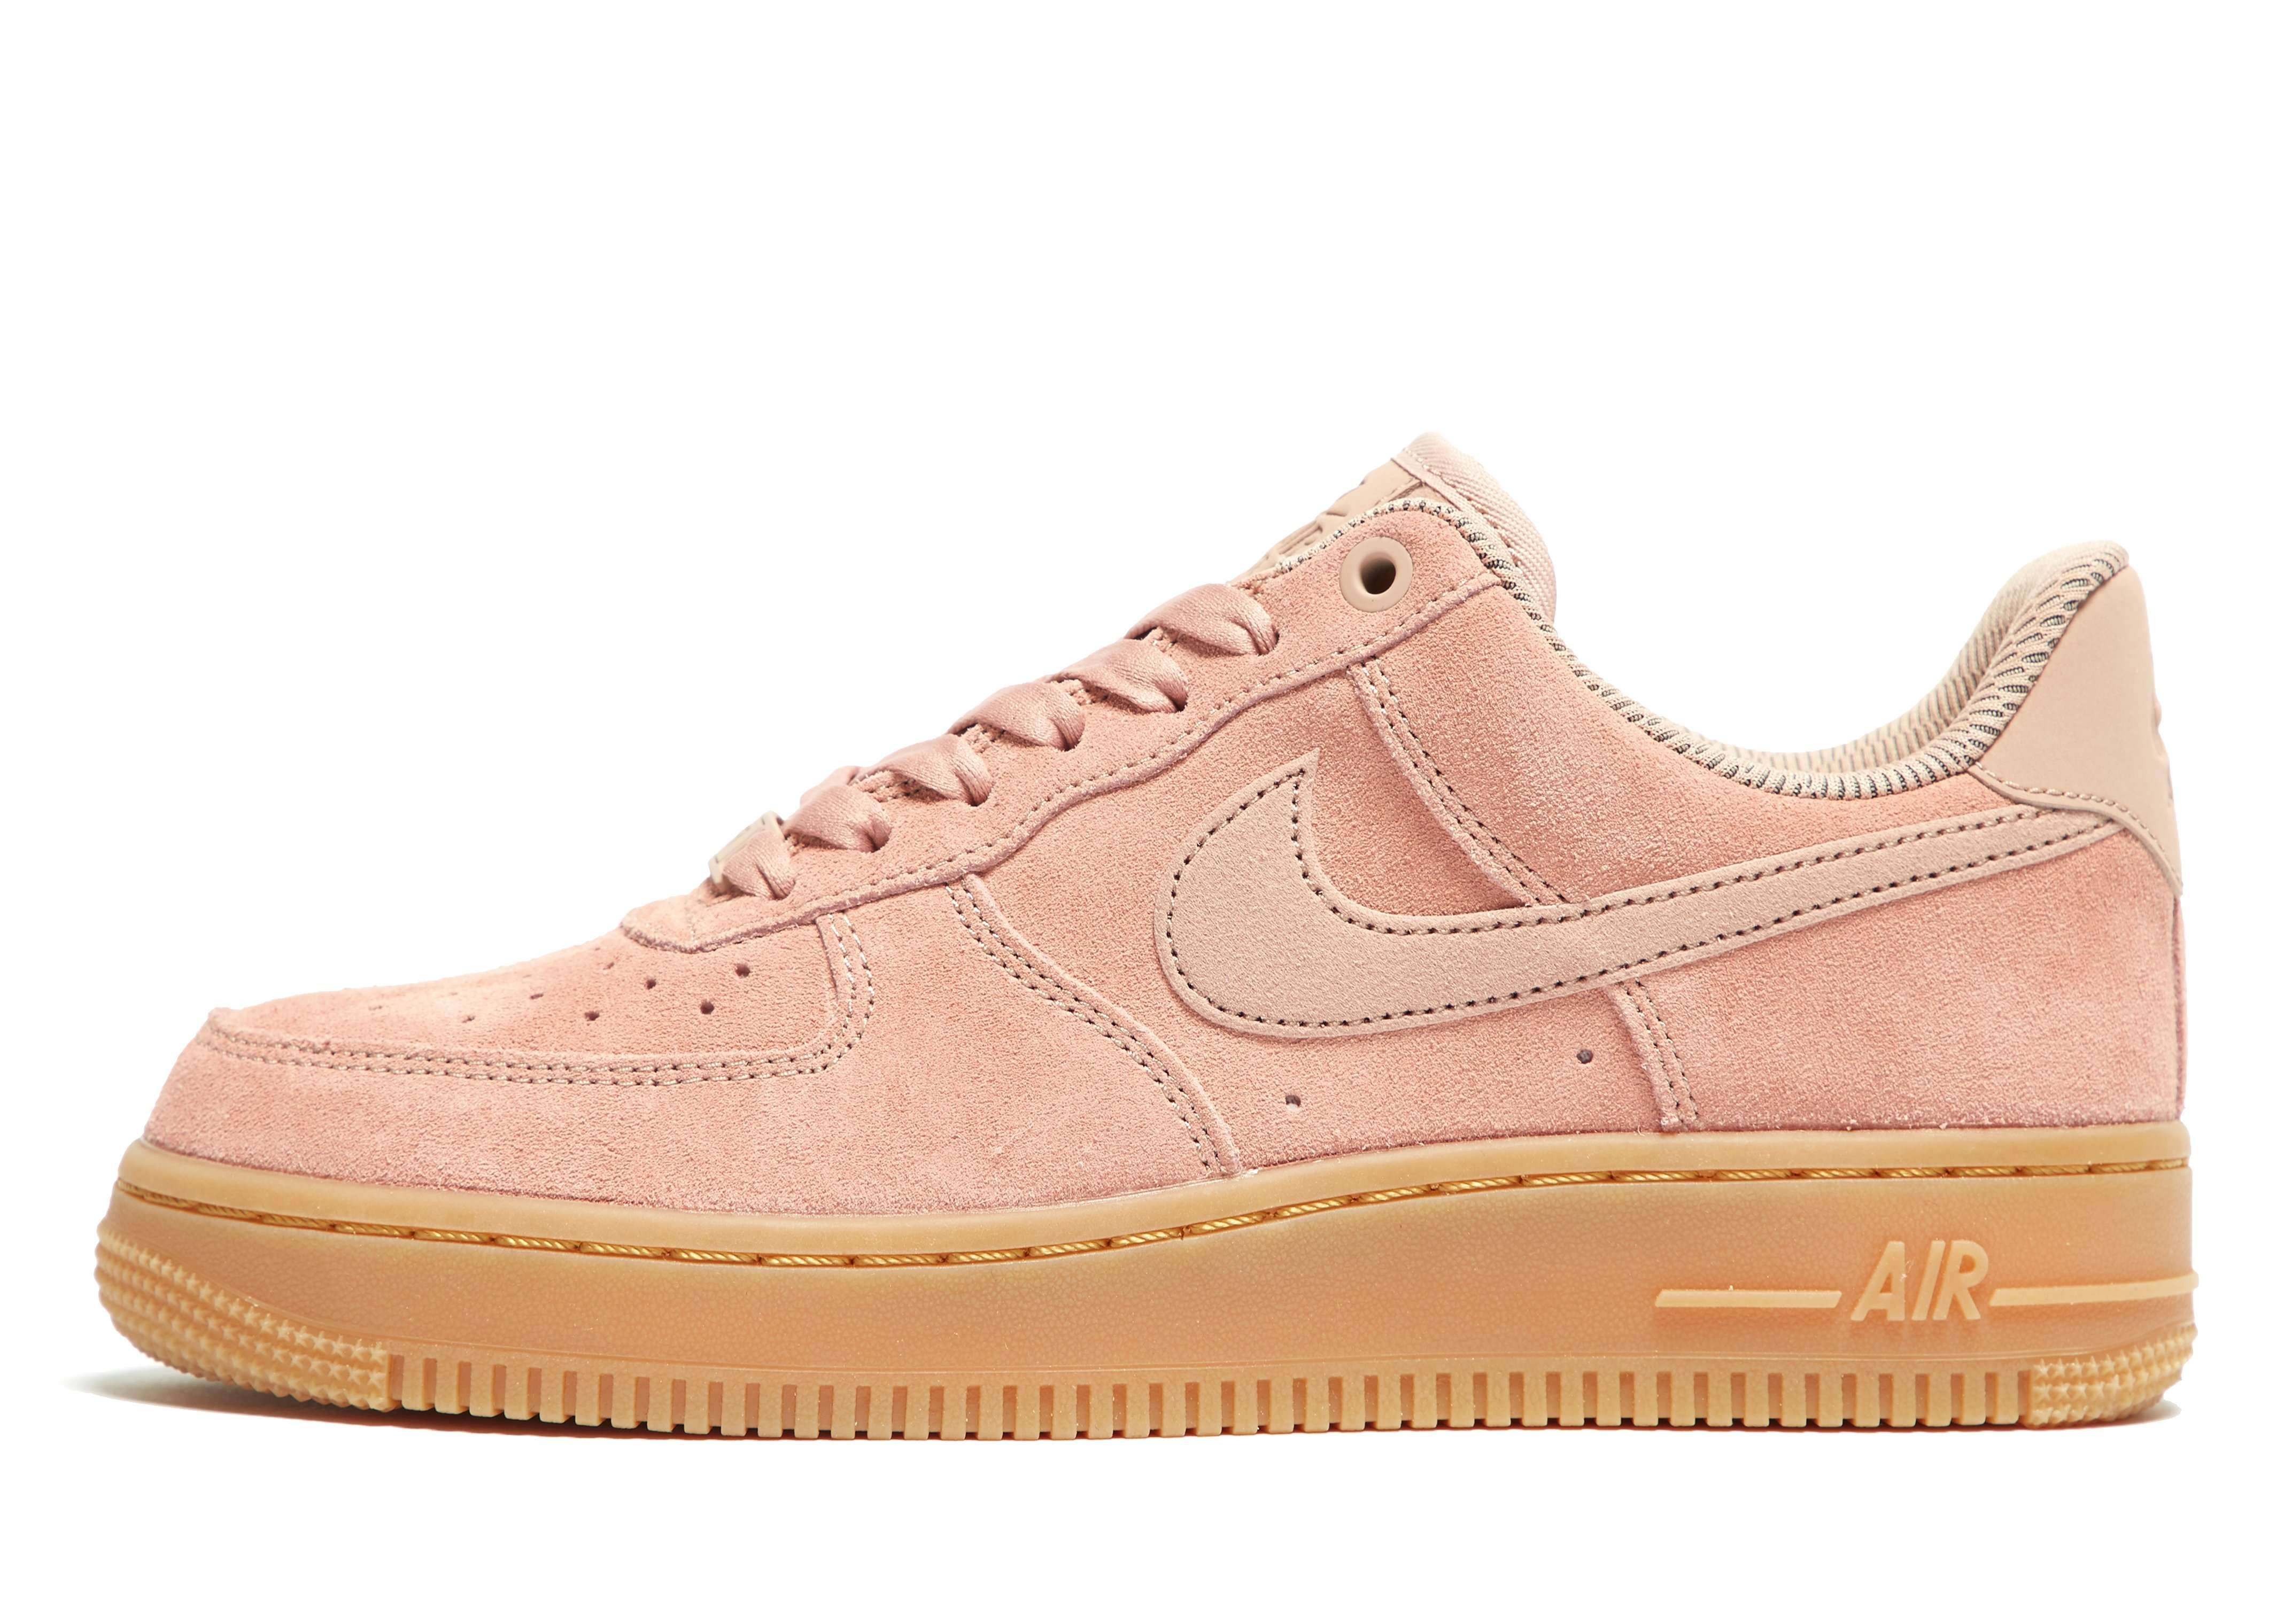 Nike Air force Damen | SUPER SHOP